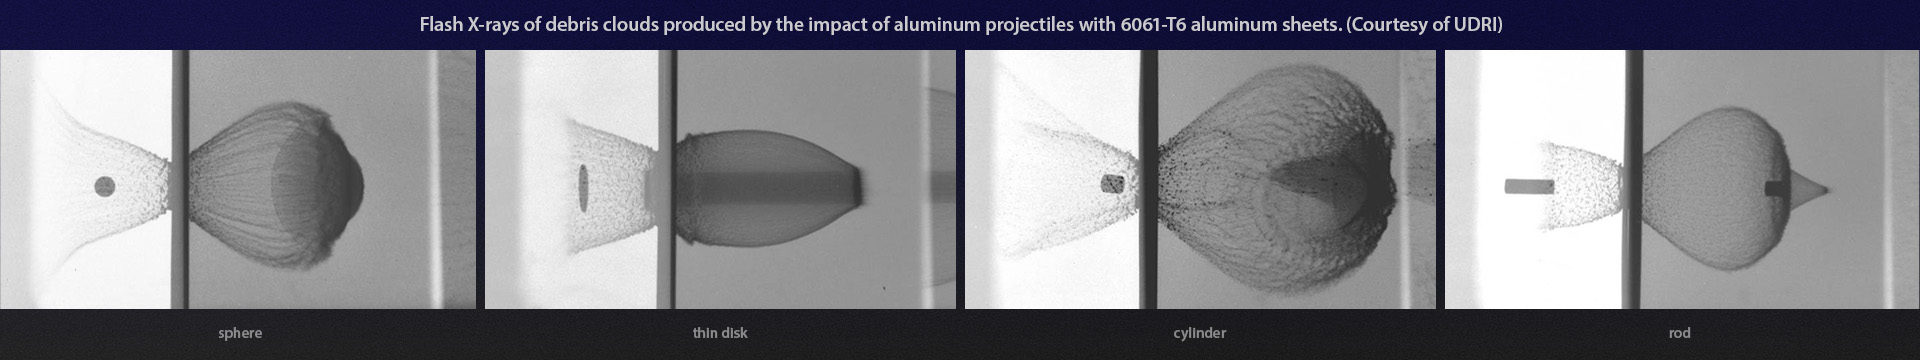 Flash X-rays of debris clouds produced by the impact of aluminum projectiles with 6061-T6 aluminum sheets. (Courtesy of UDRI)